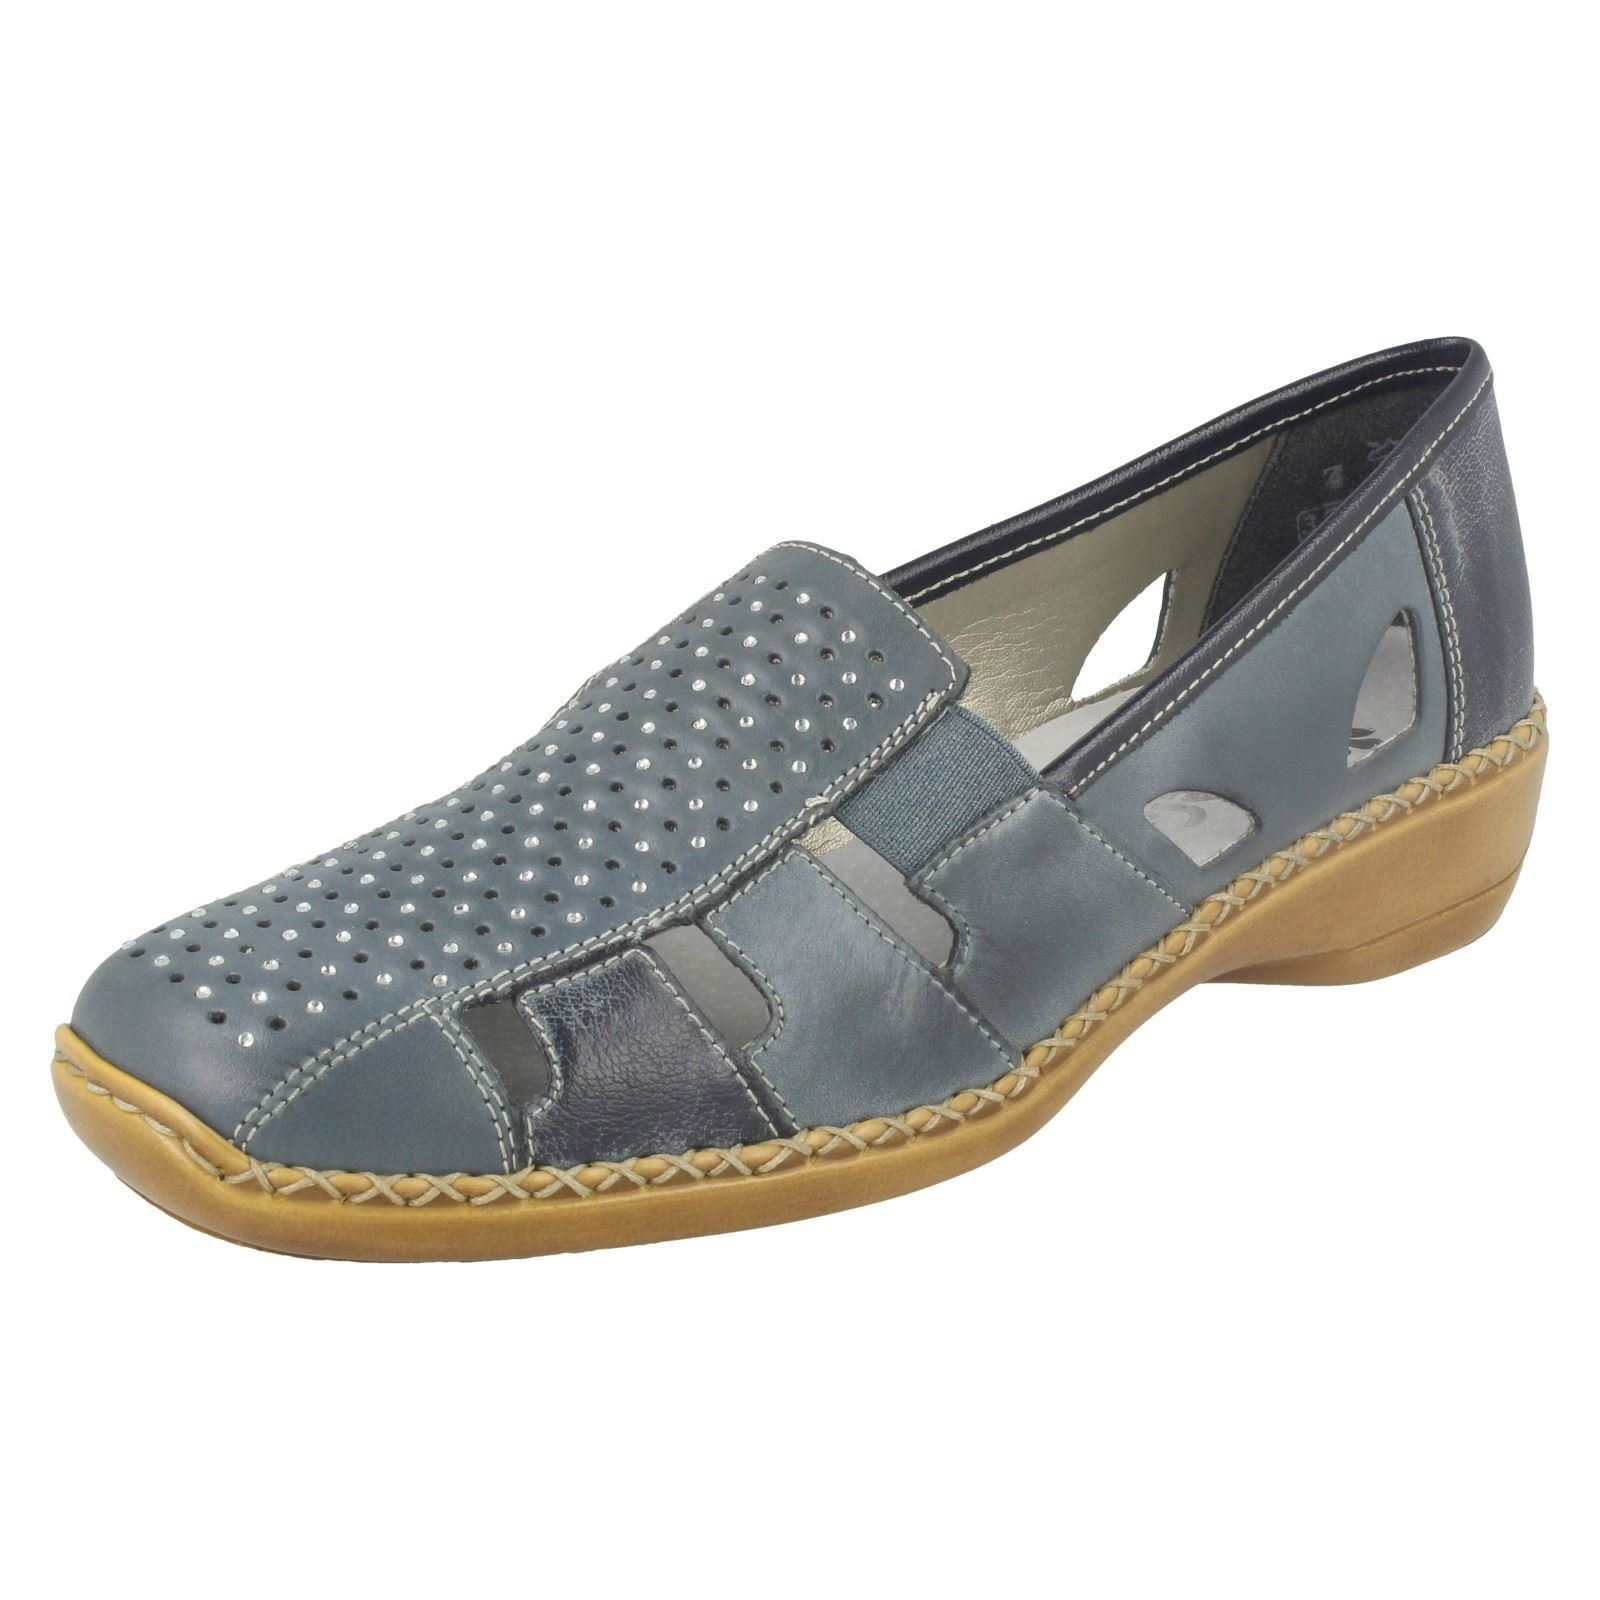 Ladies Rieker 41340 bluee Leather Casual Casual Casual shoes 6312fd